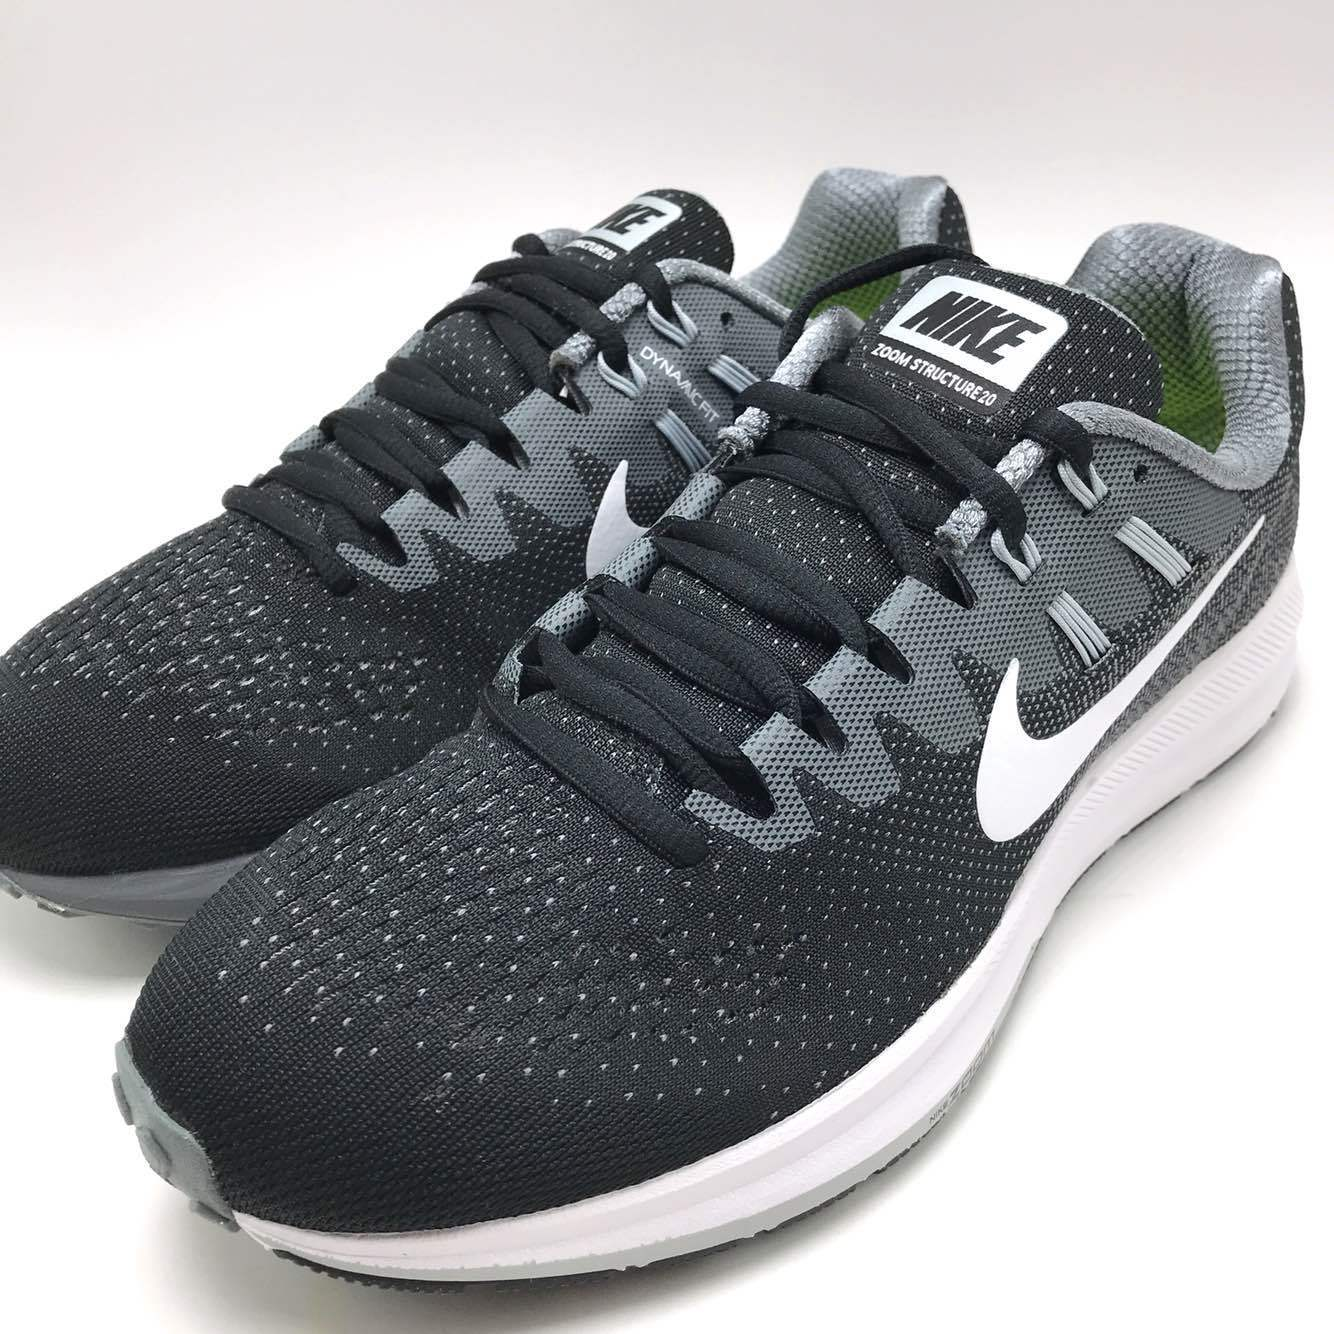 Nike Air Zoom Structure 20 Men's Running shoes shoes shoes Black White-Cool Grey 849576-003 d64b15